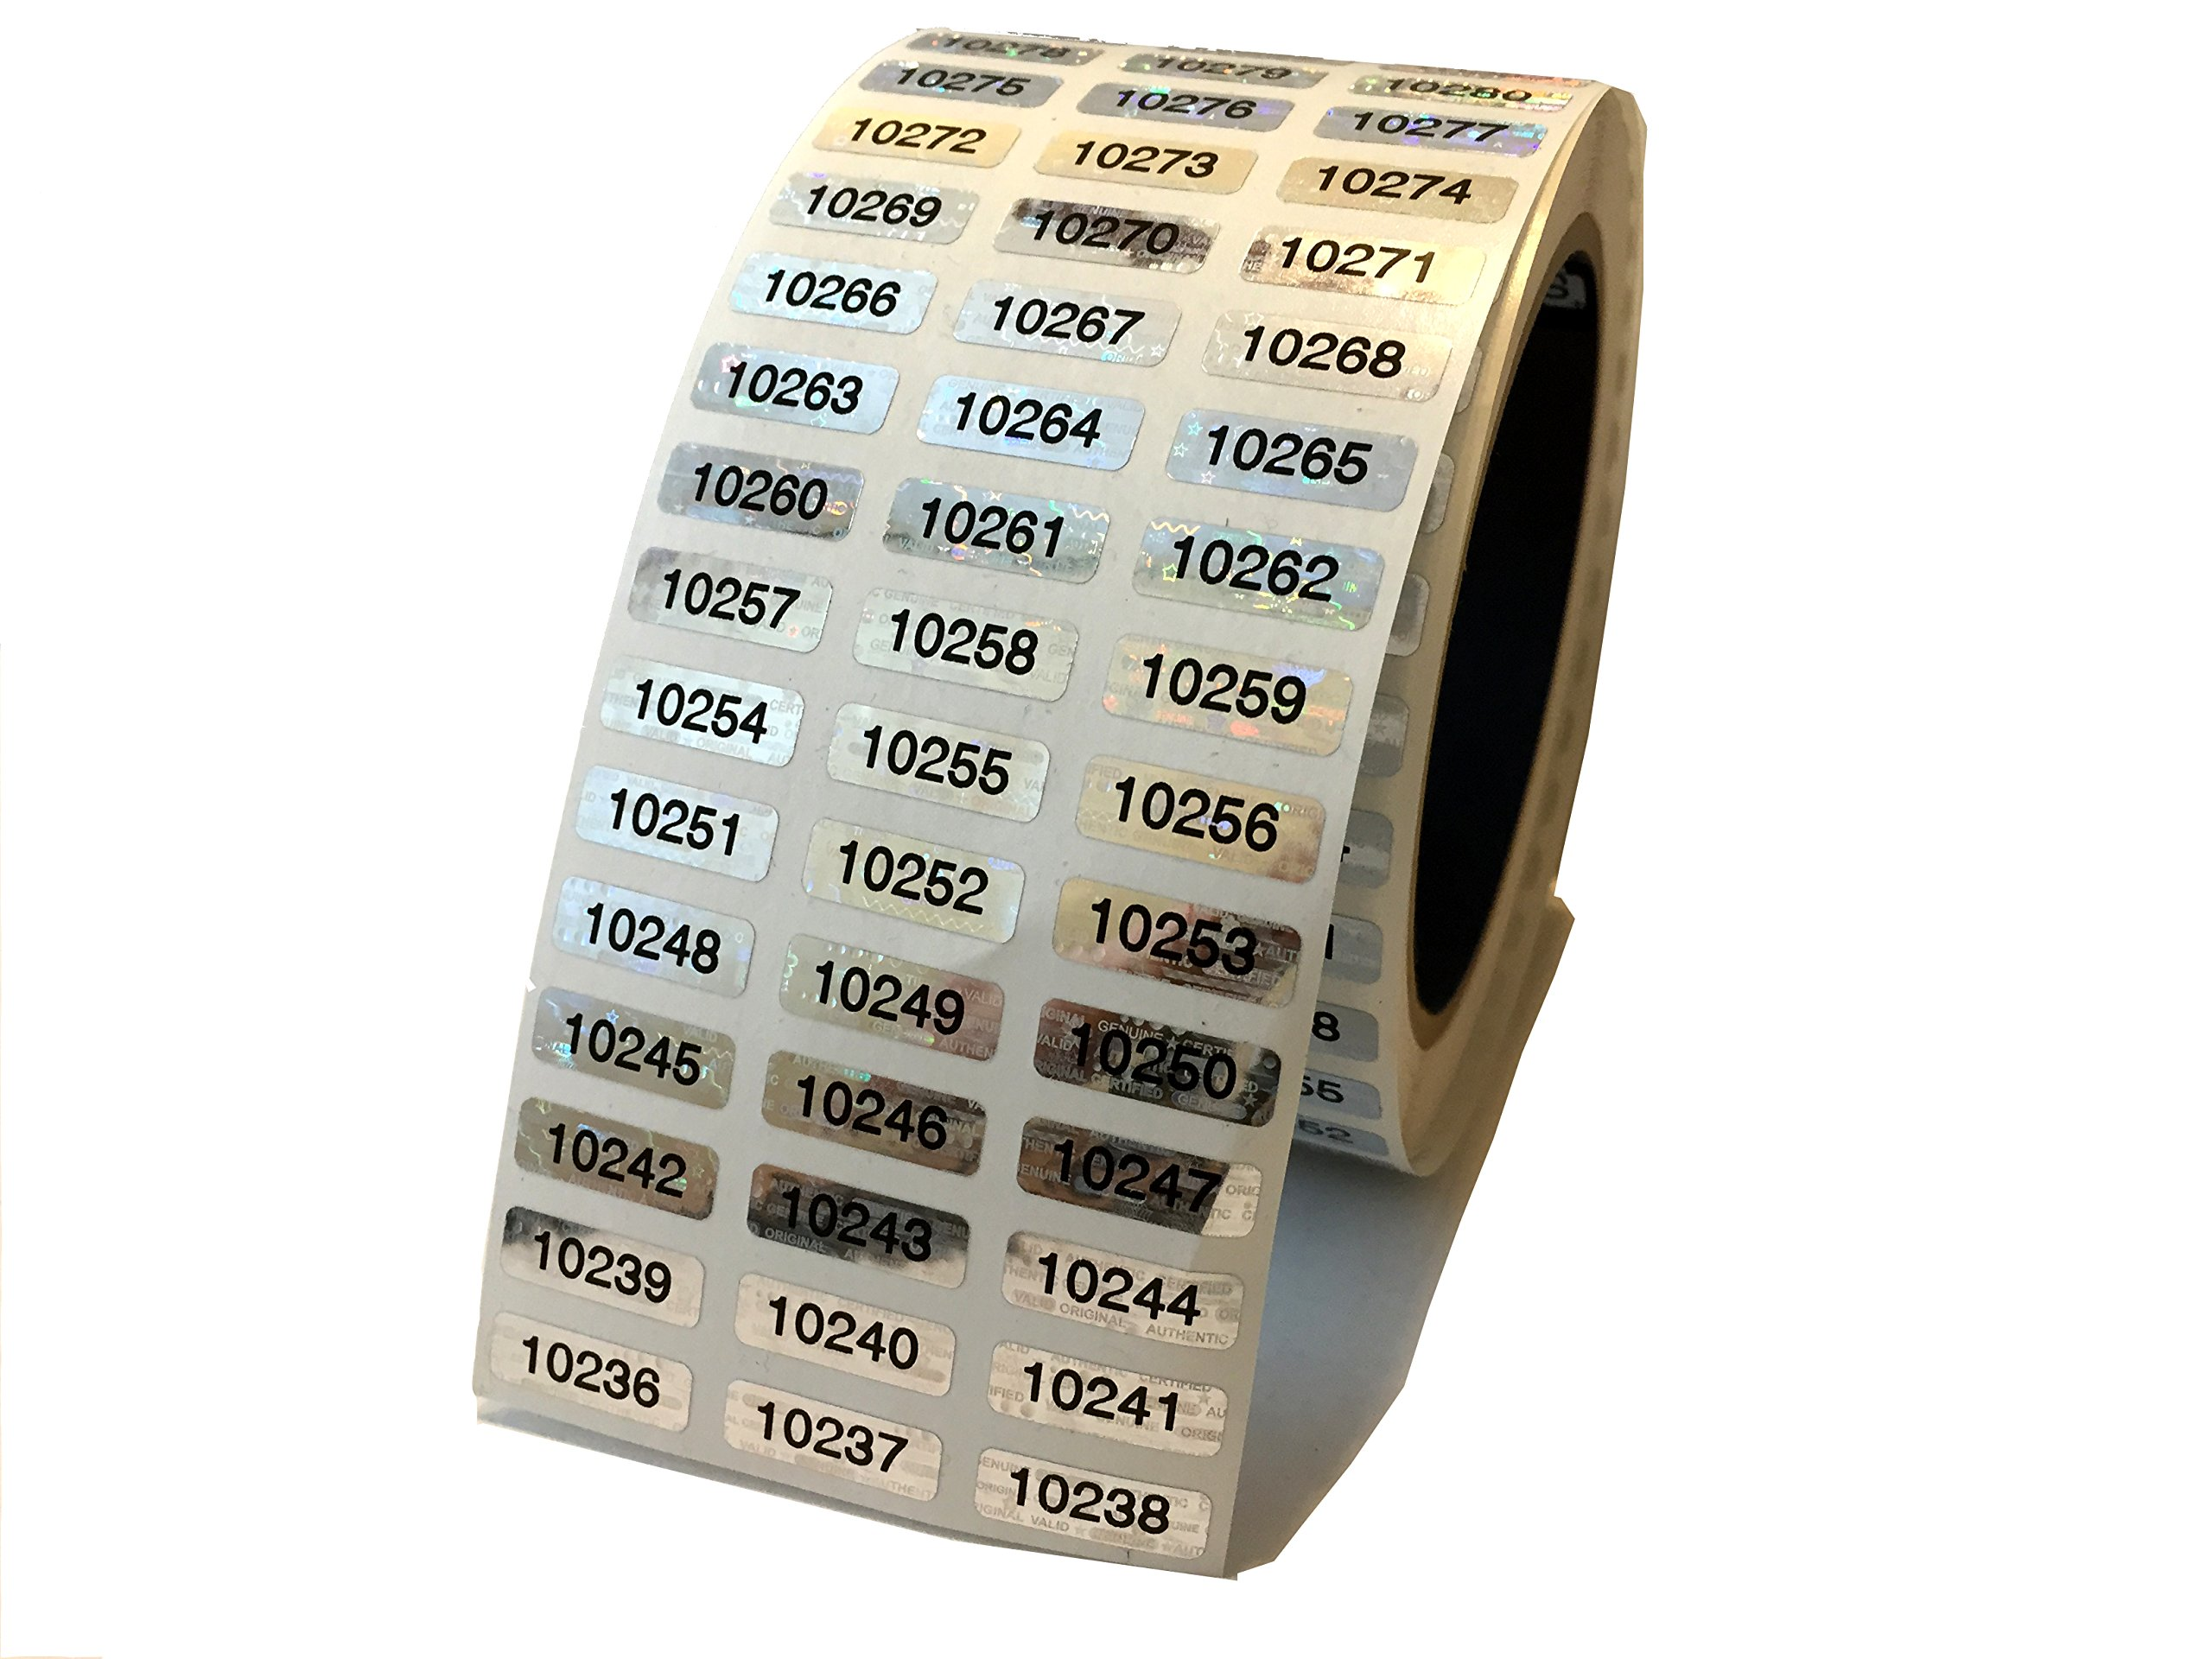 1,000 Silver Hologram Numbered TamperMax Tamper Evident Security Label Holographic Seal Sticker, Size 0.75'' x 0.25'' (19mm x 6mm). by intertronix